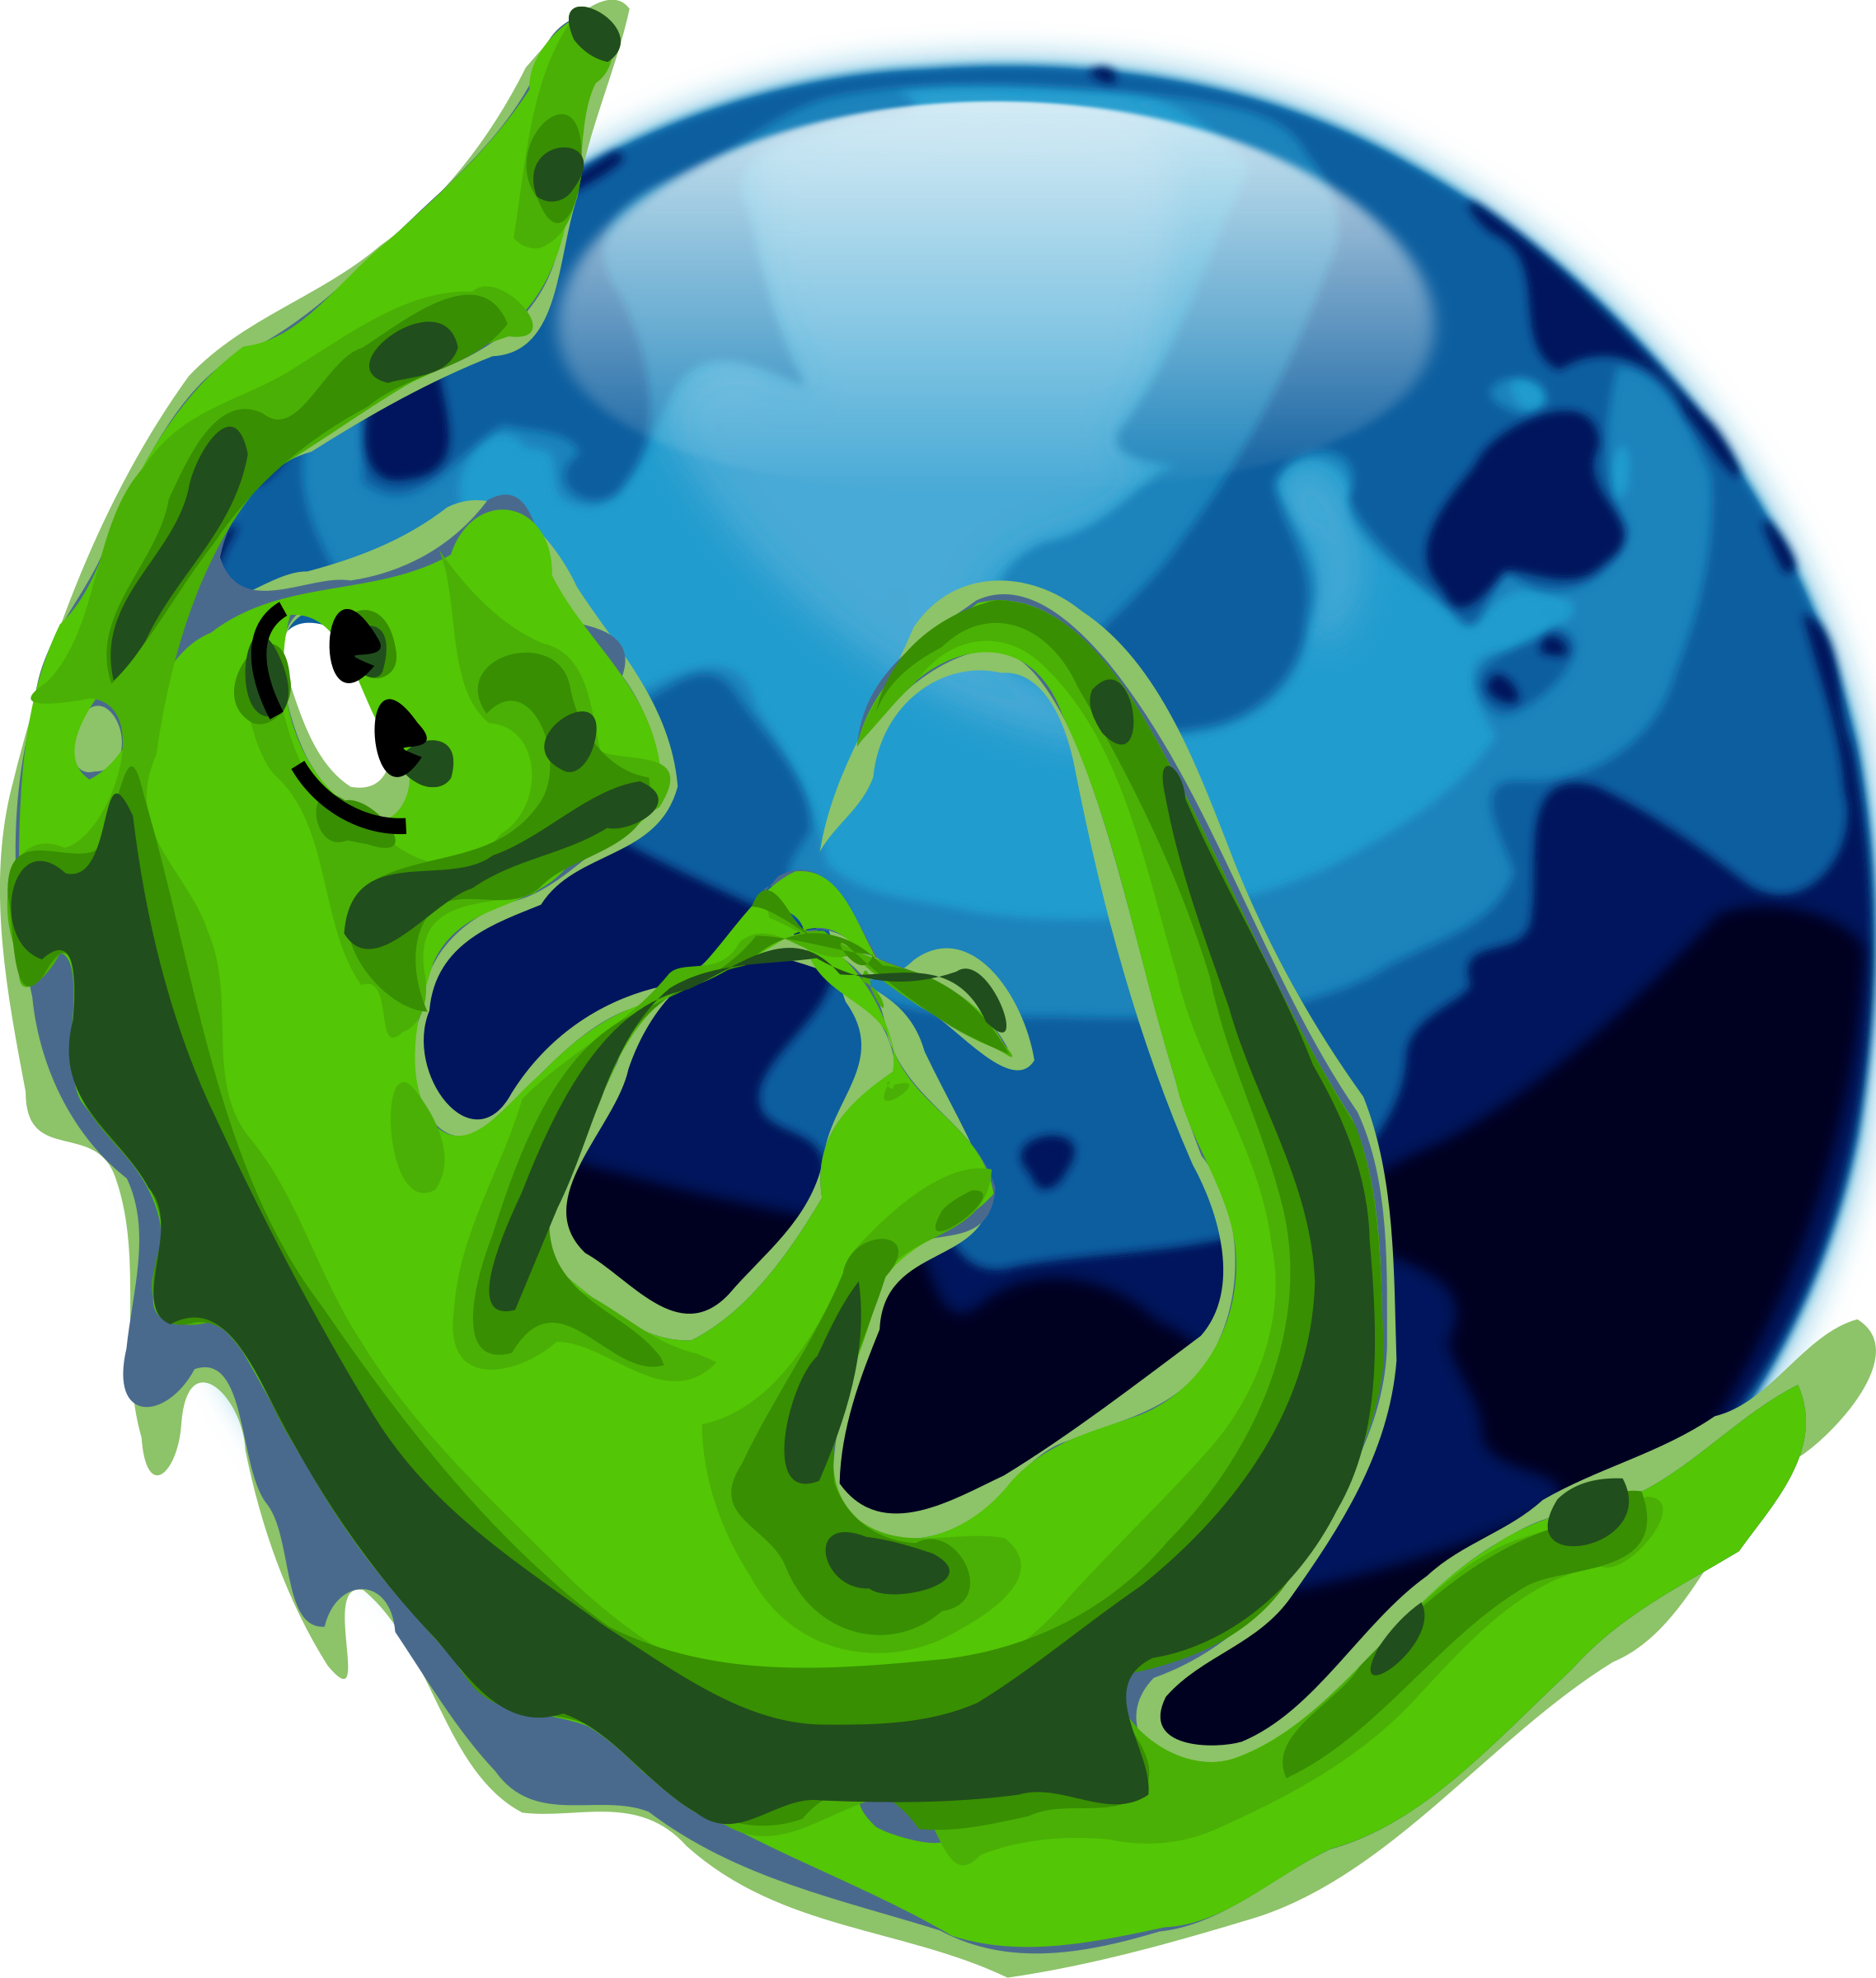 Alternate Mozilla Browser Icon by roystonlodge